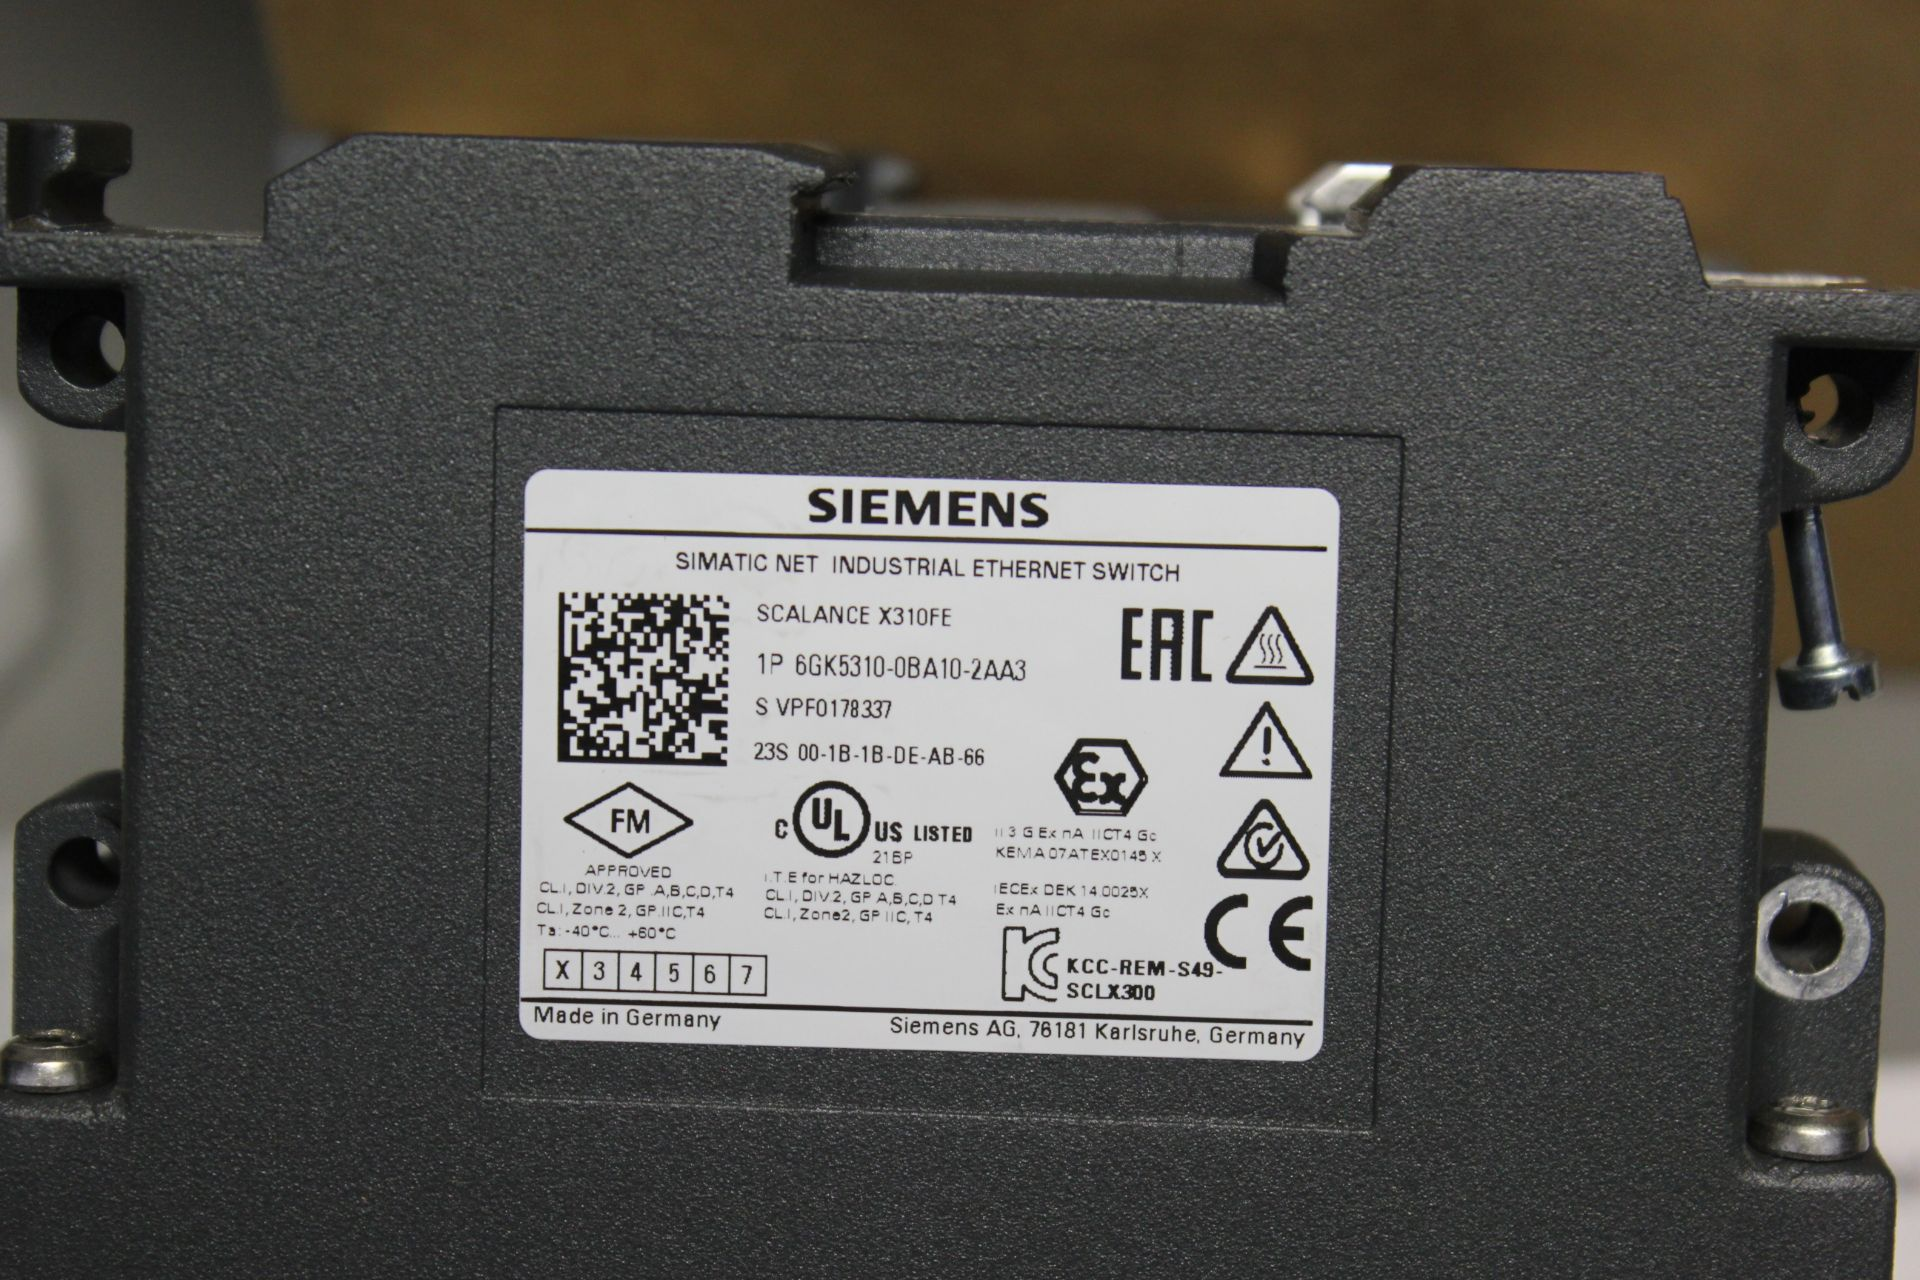 NEW SIEMENS SCALANCE MANAGED INDUSTRIAL ETHERNET SWITCH - Image 7 of 7